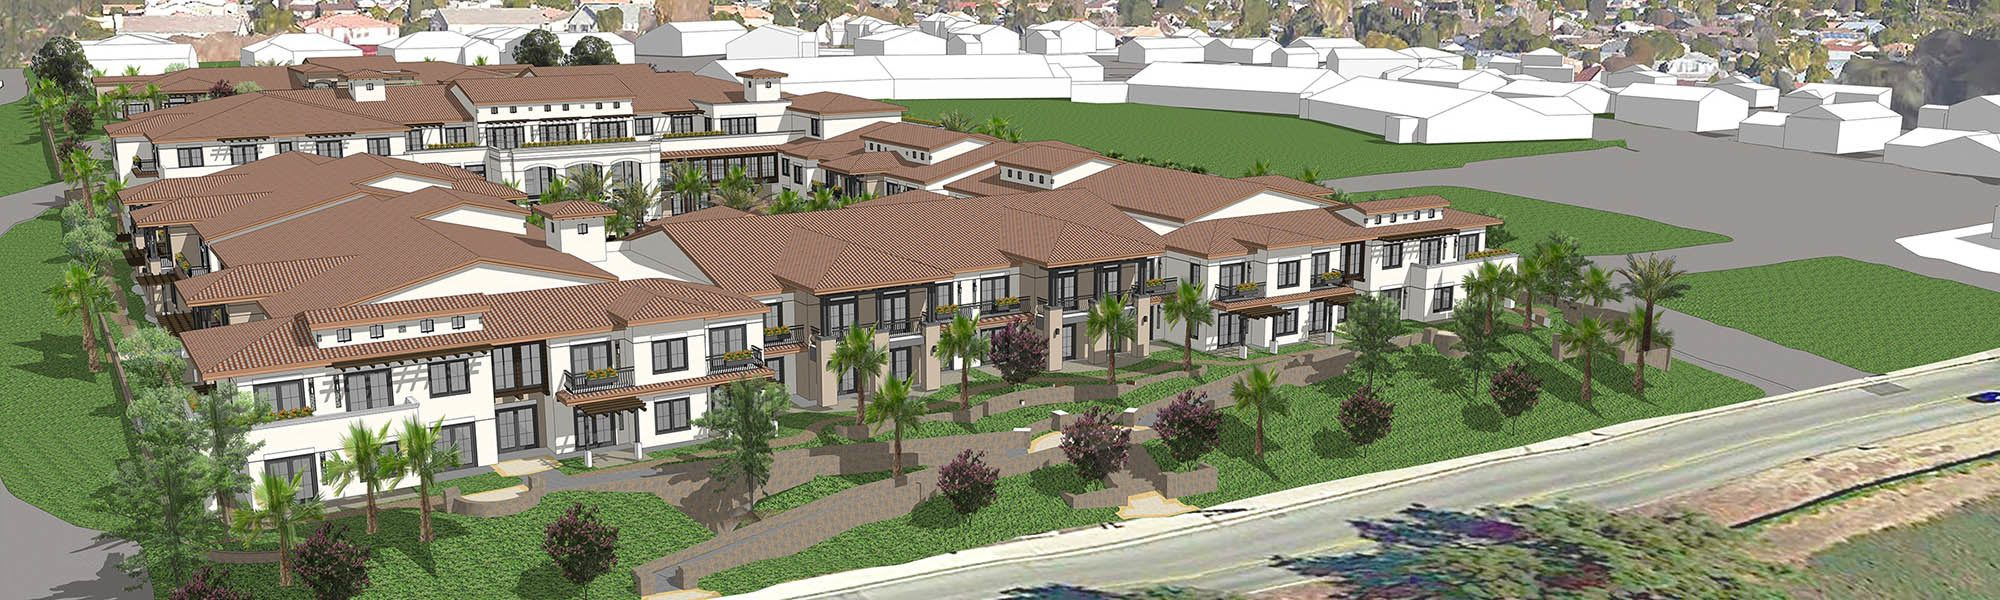 Senior Living Development   Rancho Cucamonga, CA